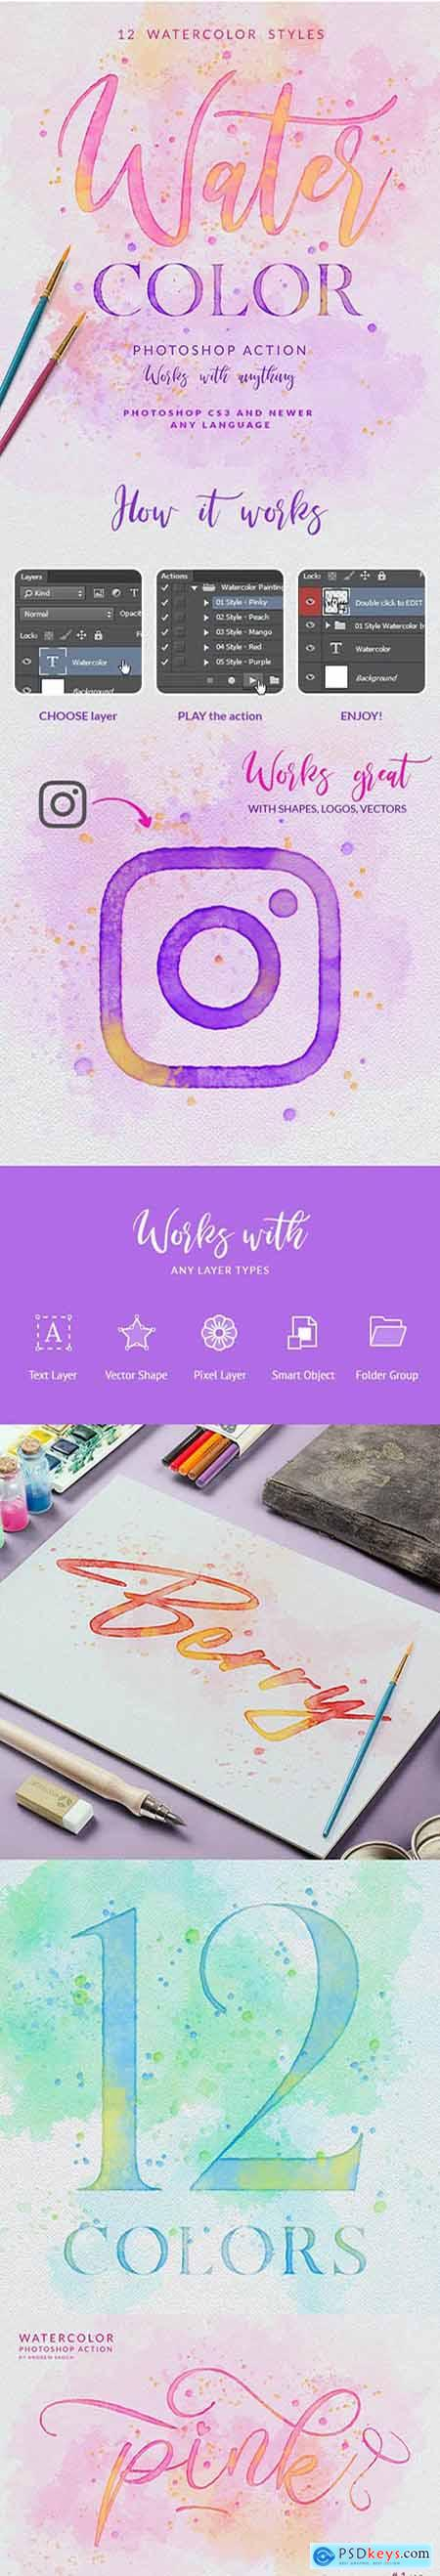 Watercolor Painting - Photoshop Action 25787736